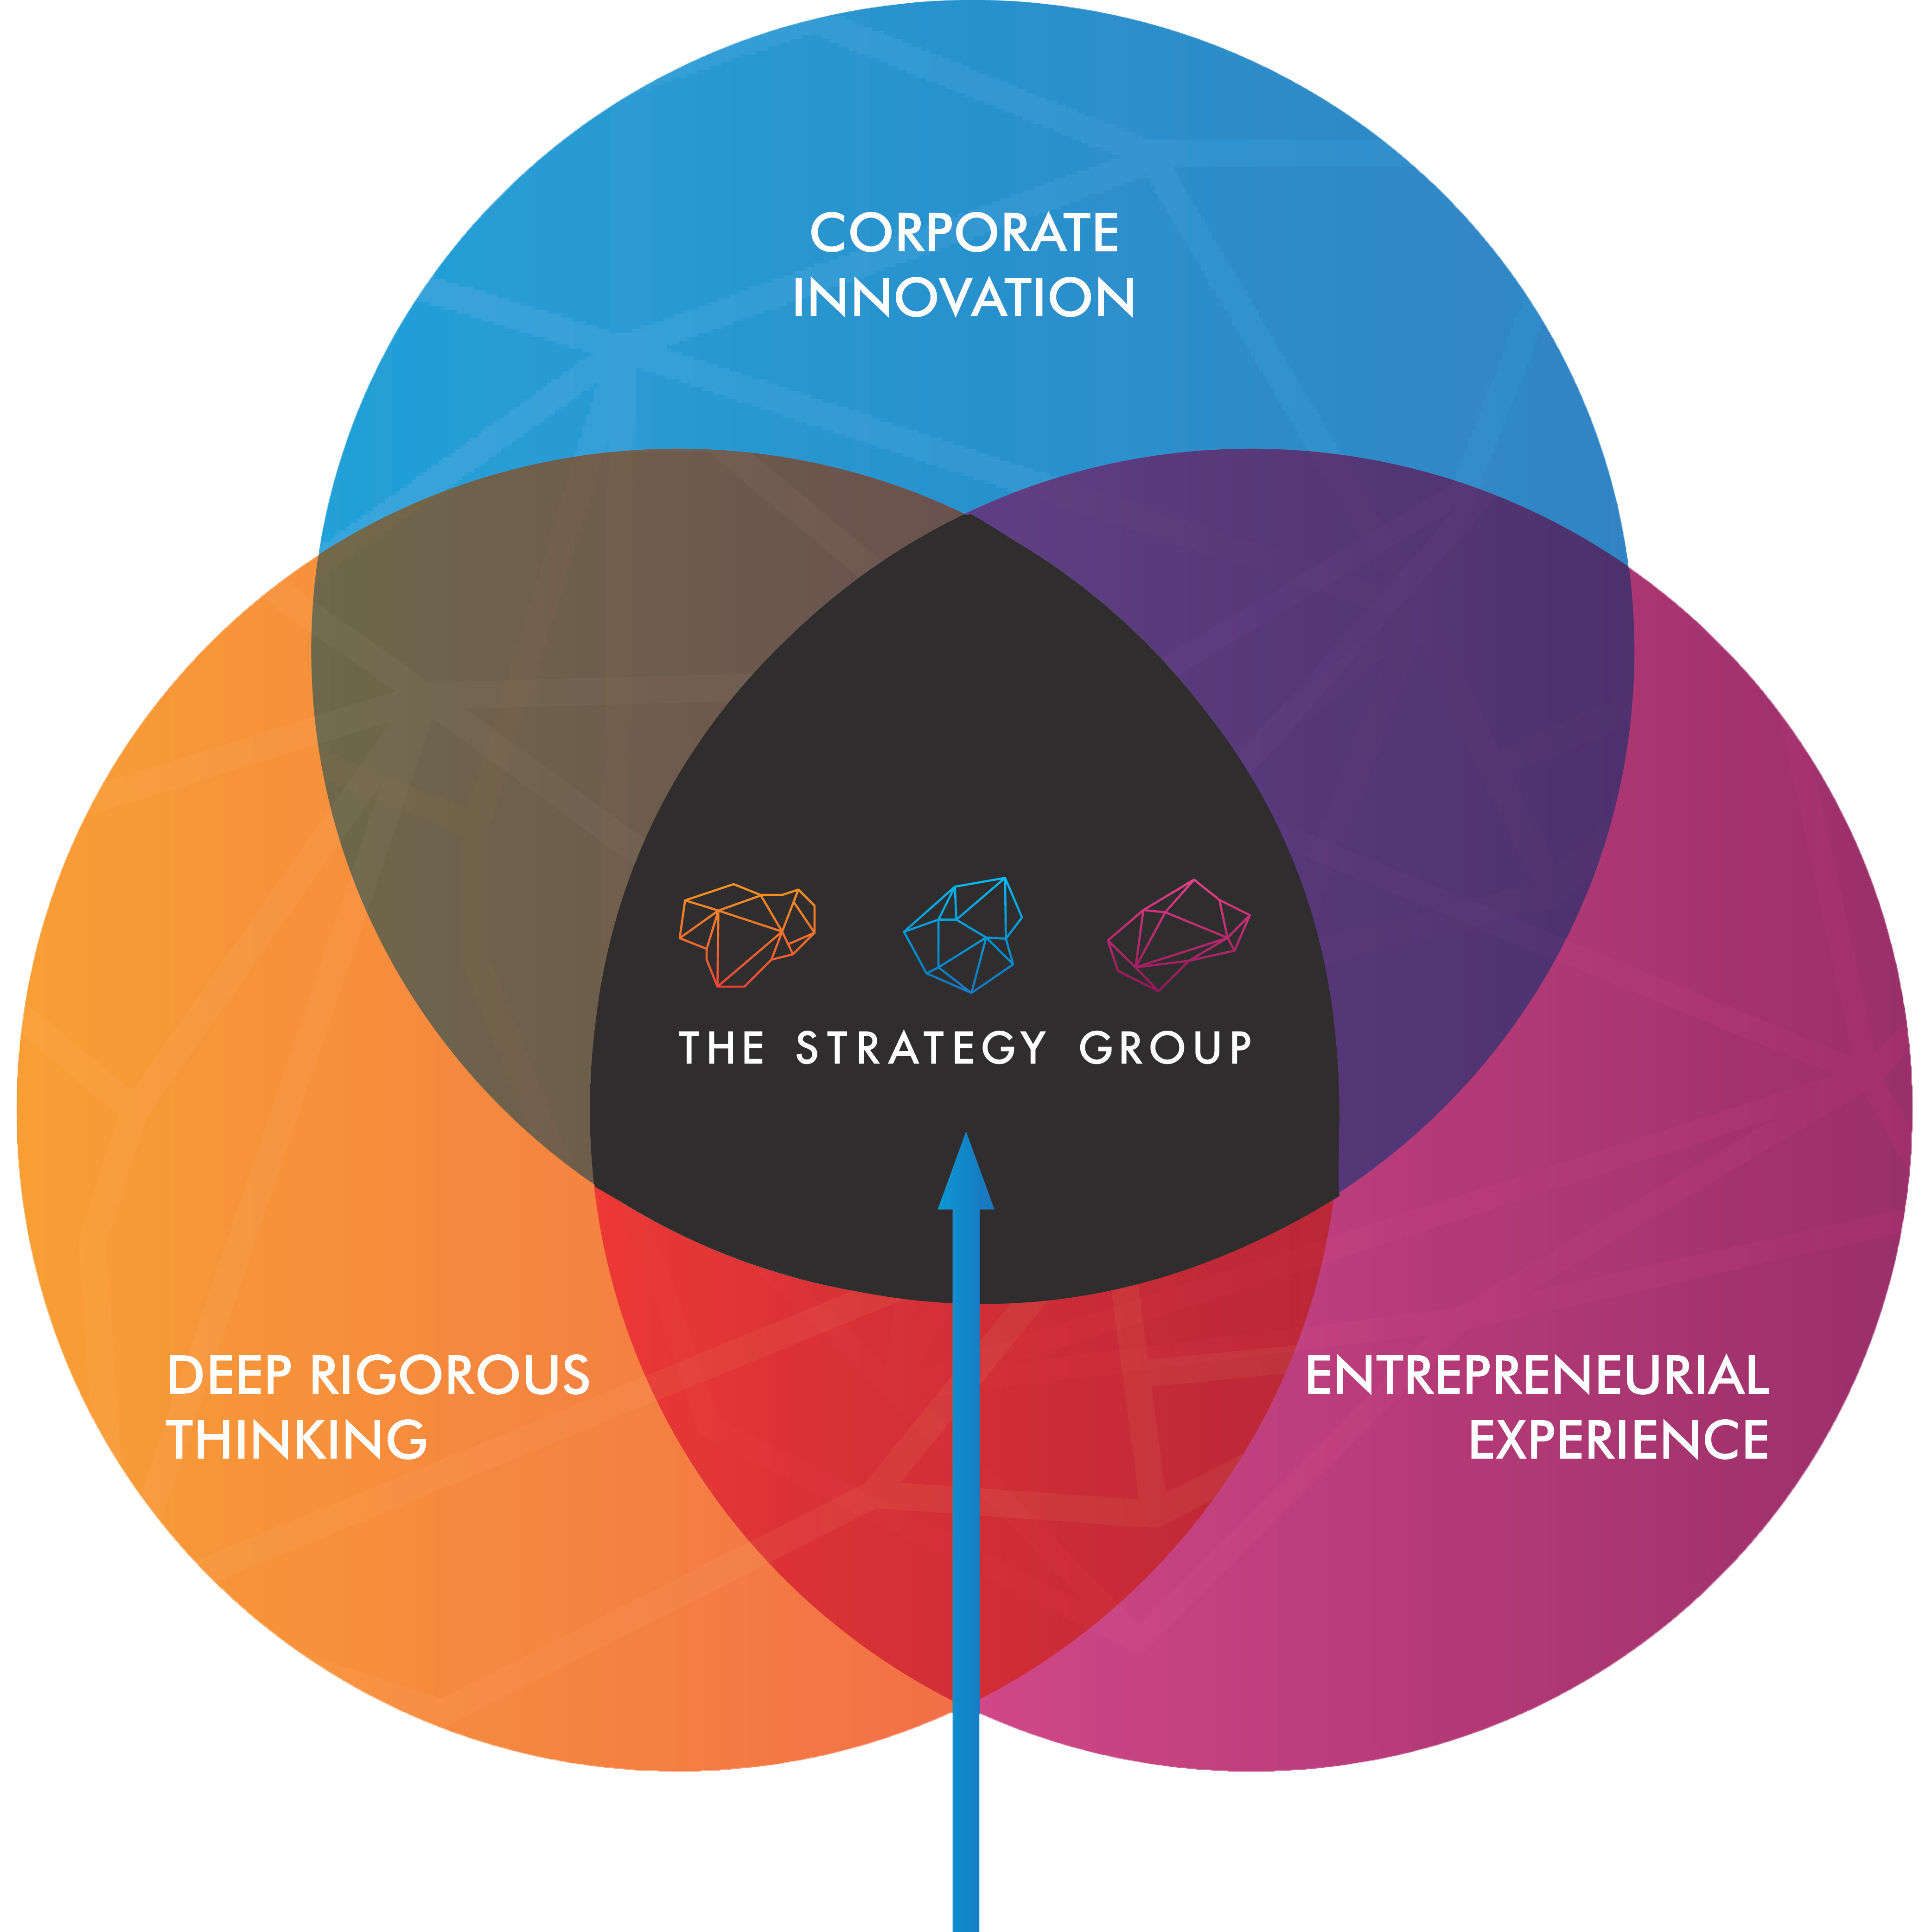 Venn Diagram showing The Strategy Group at the centre of Corporate Innovation, Deep Rigorous Thinking and Entrepreneurial Experience